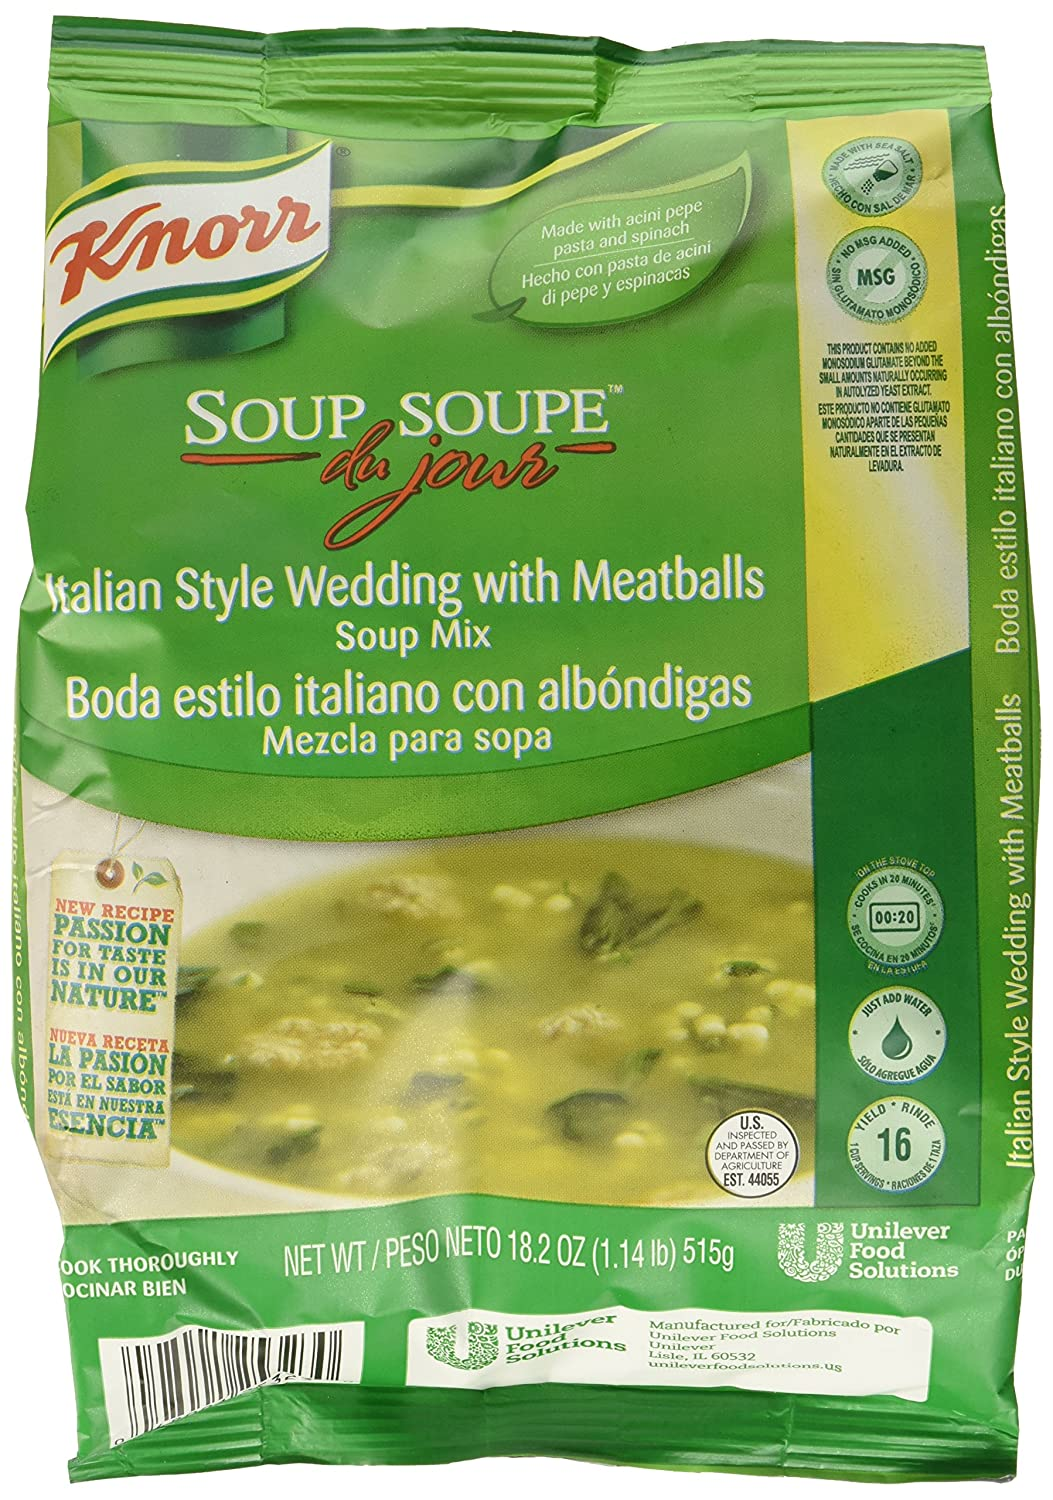 Amazon.com : Knorr Soup du Jour Mix Italian Style Wedding with Meatballs 18.2 ounces 4 count : Grocery & Gourmet Food